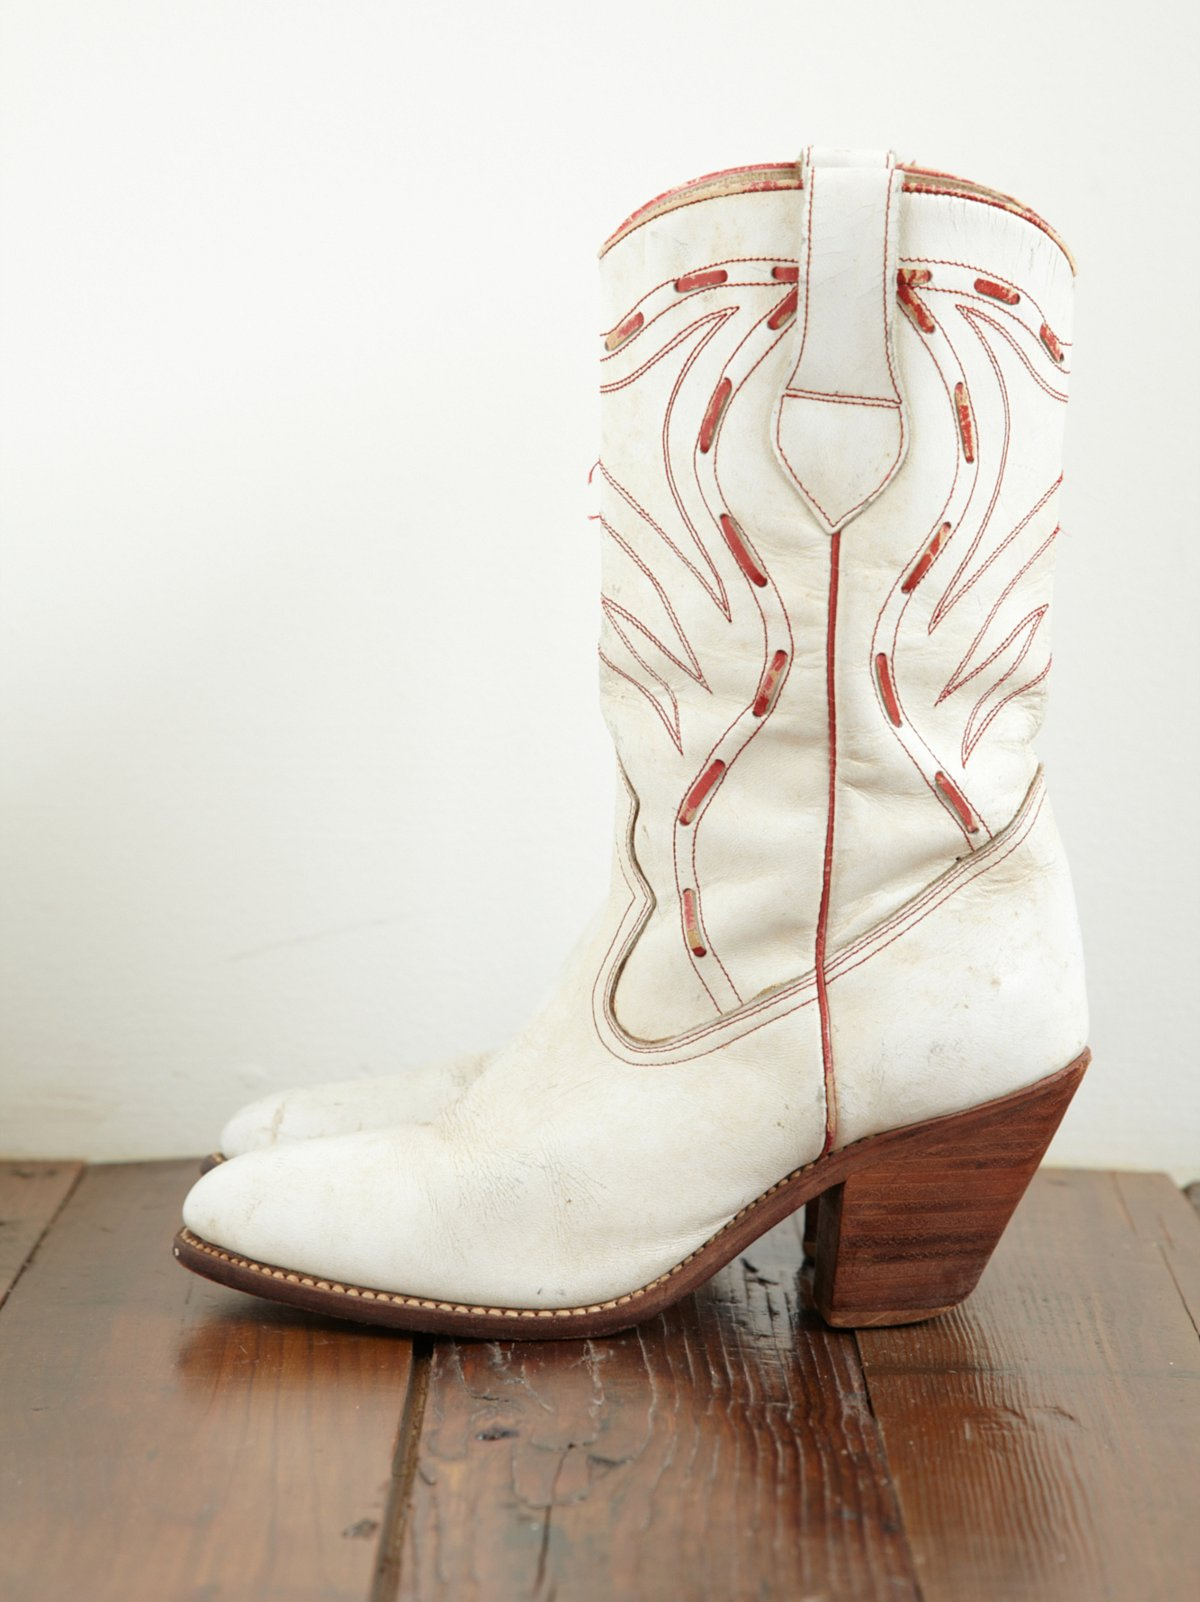 Vintage White Cowboy Boots with Red Detailing